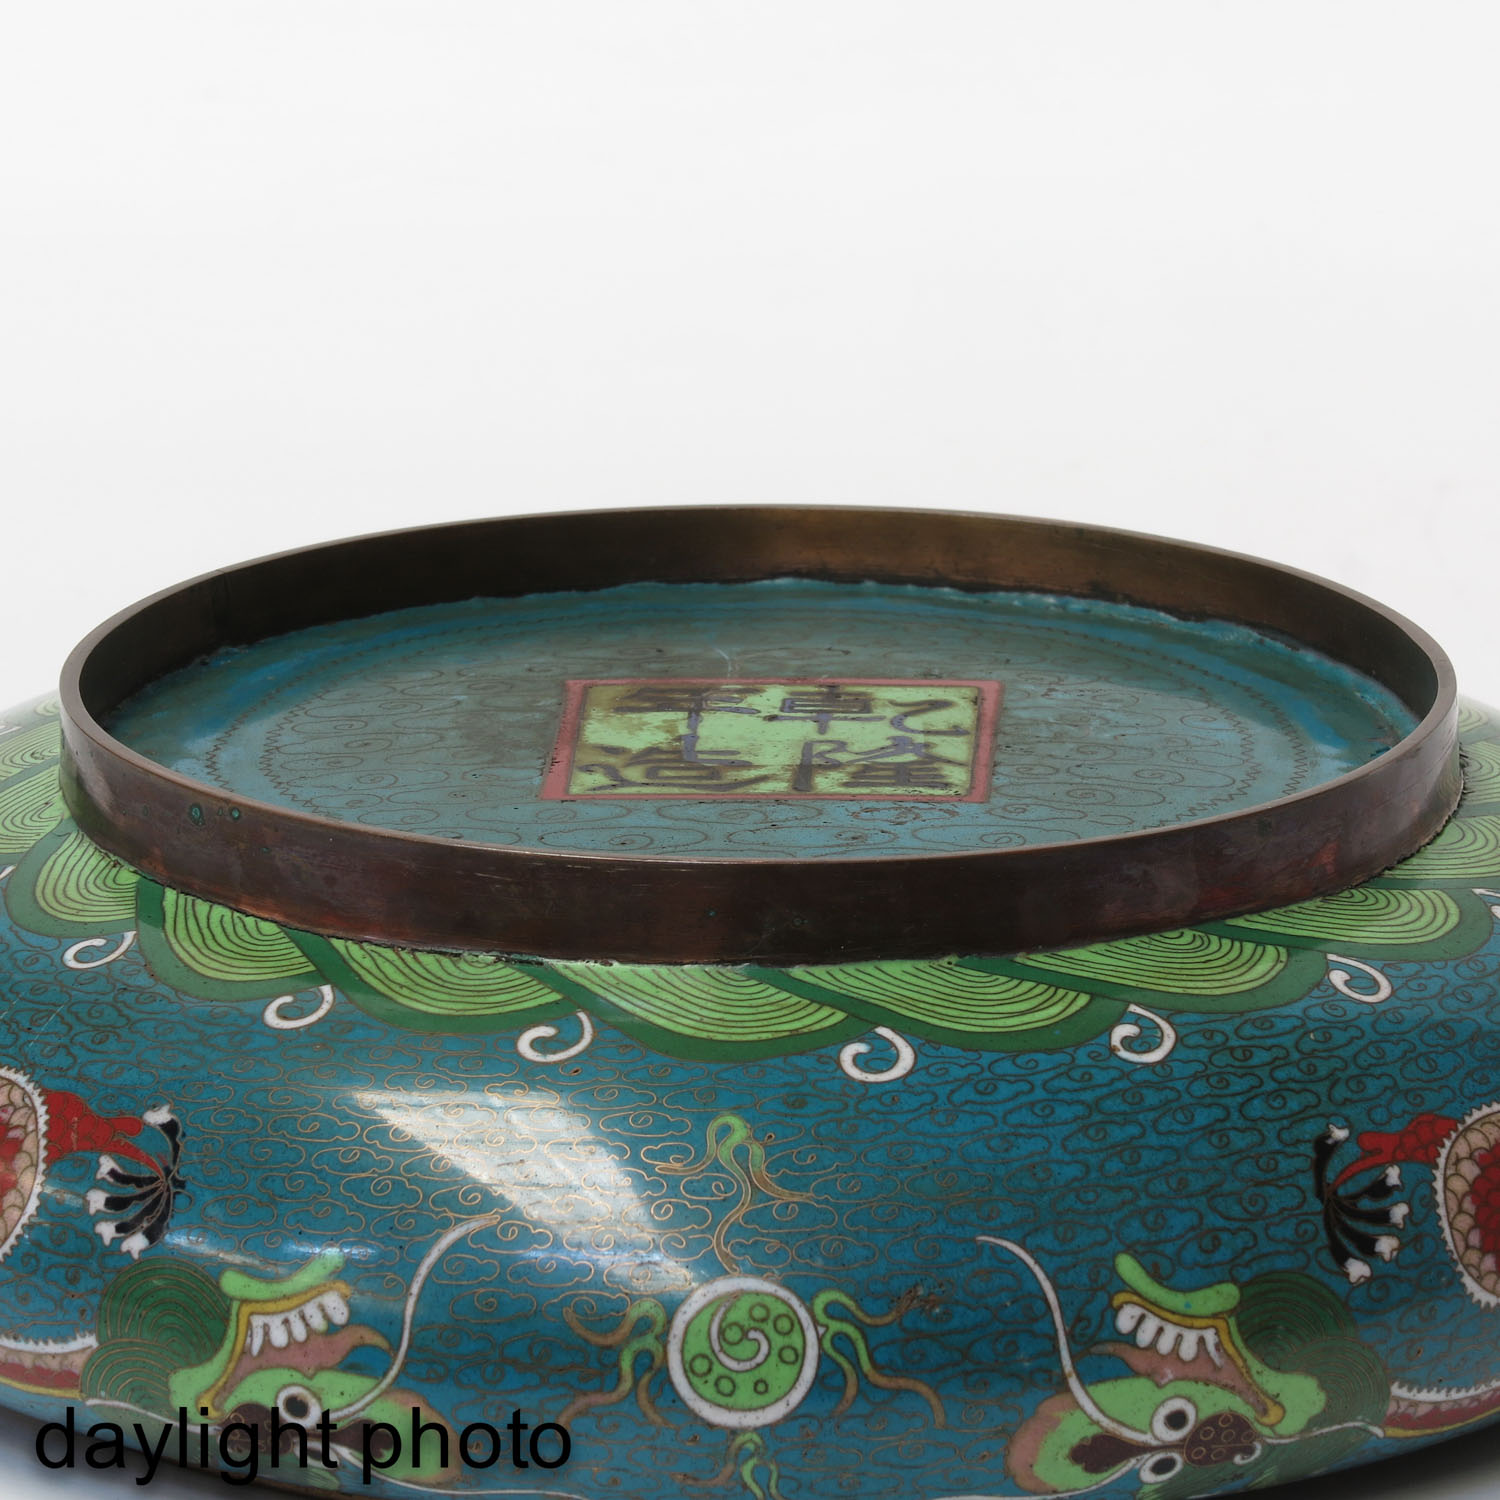 A Cloisonne Censer - Image 8 of 10